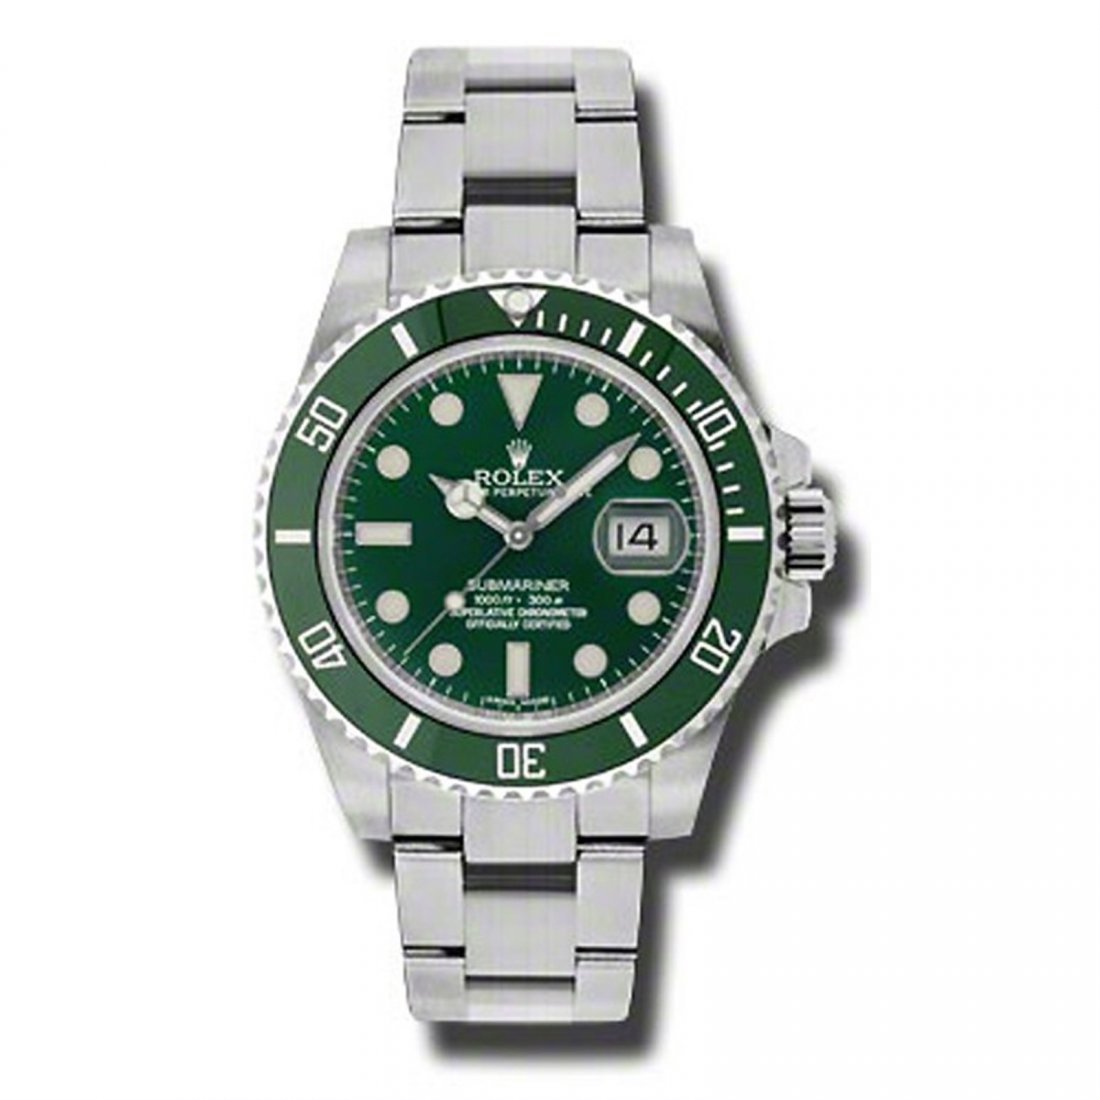 40mm Rolex Stainless Steel Oyster Perpetual Submariner